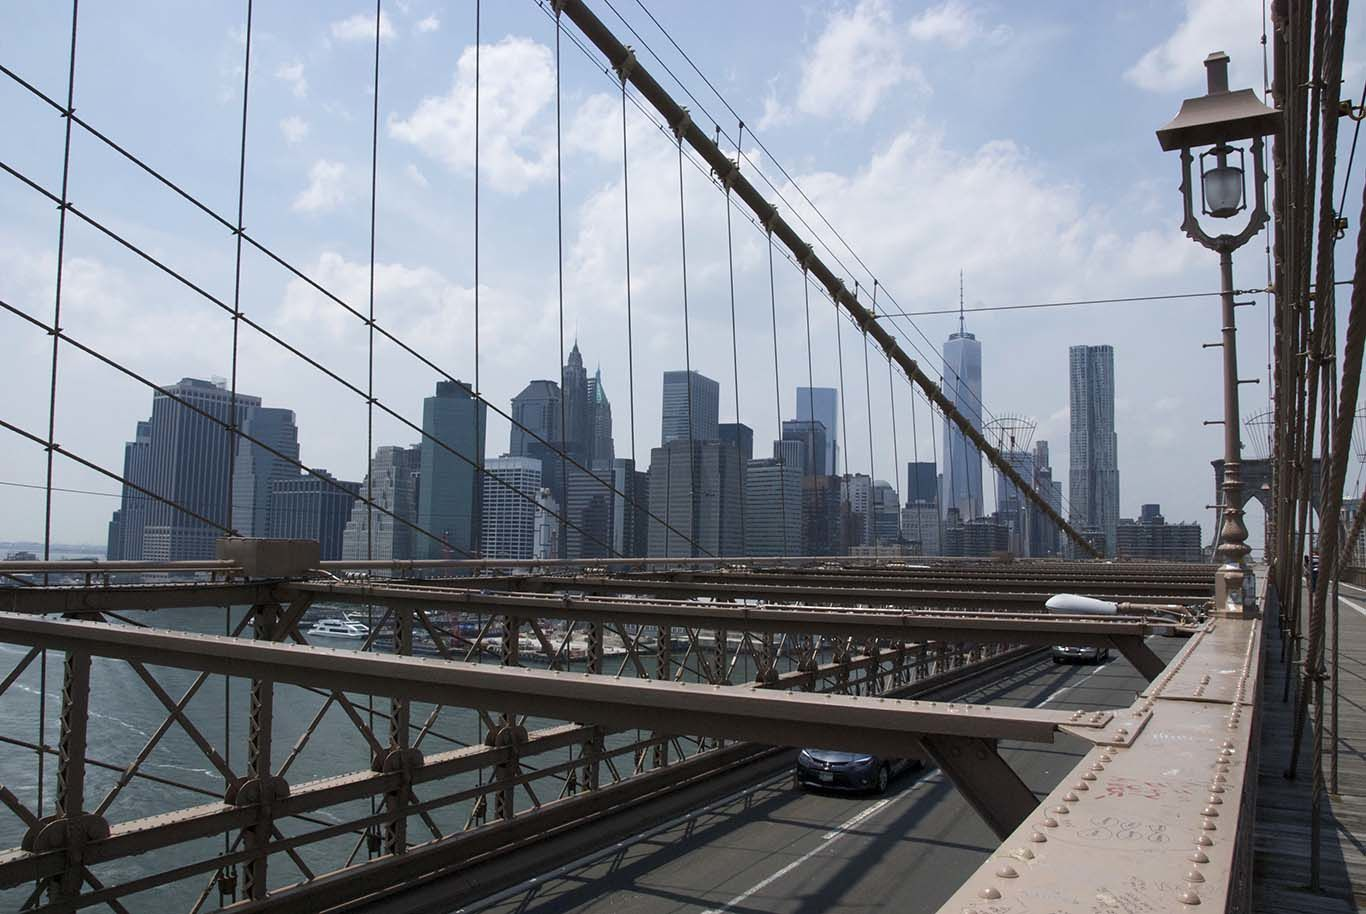 Brooklyn Bridge and a bit of Brooklyn, which is a very pleasant place to hang out in!